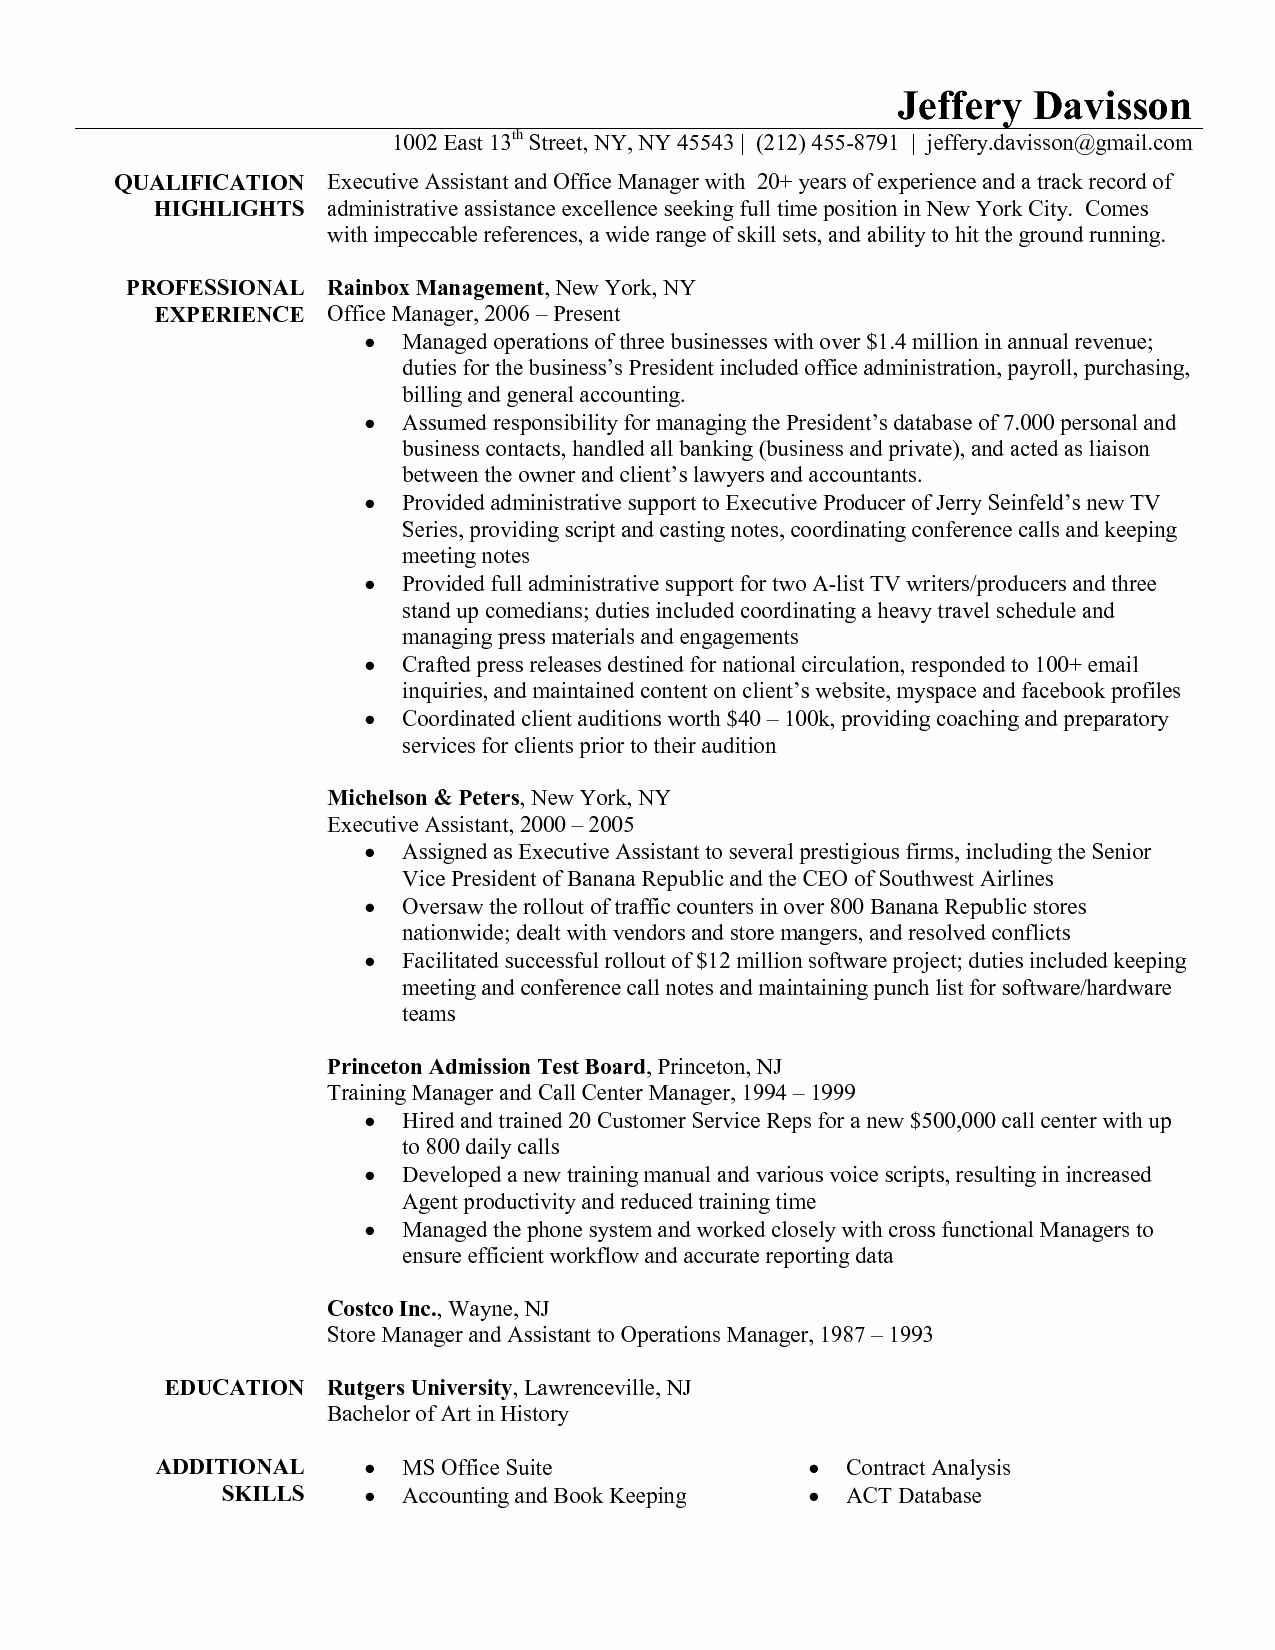 Medical Office Manager Resume - Medical Fice Manager Resume Samples Valid Resume for Fice Manager